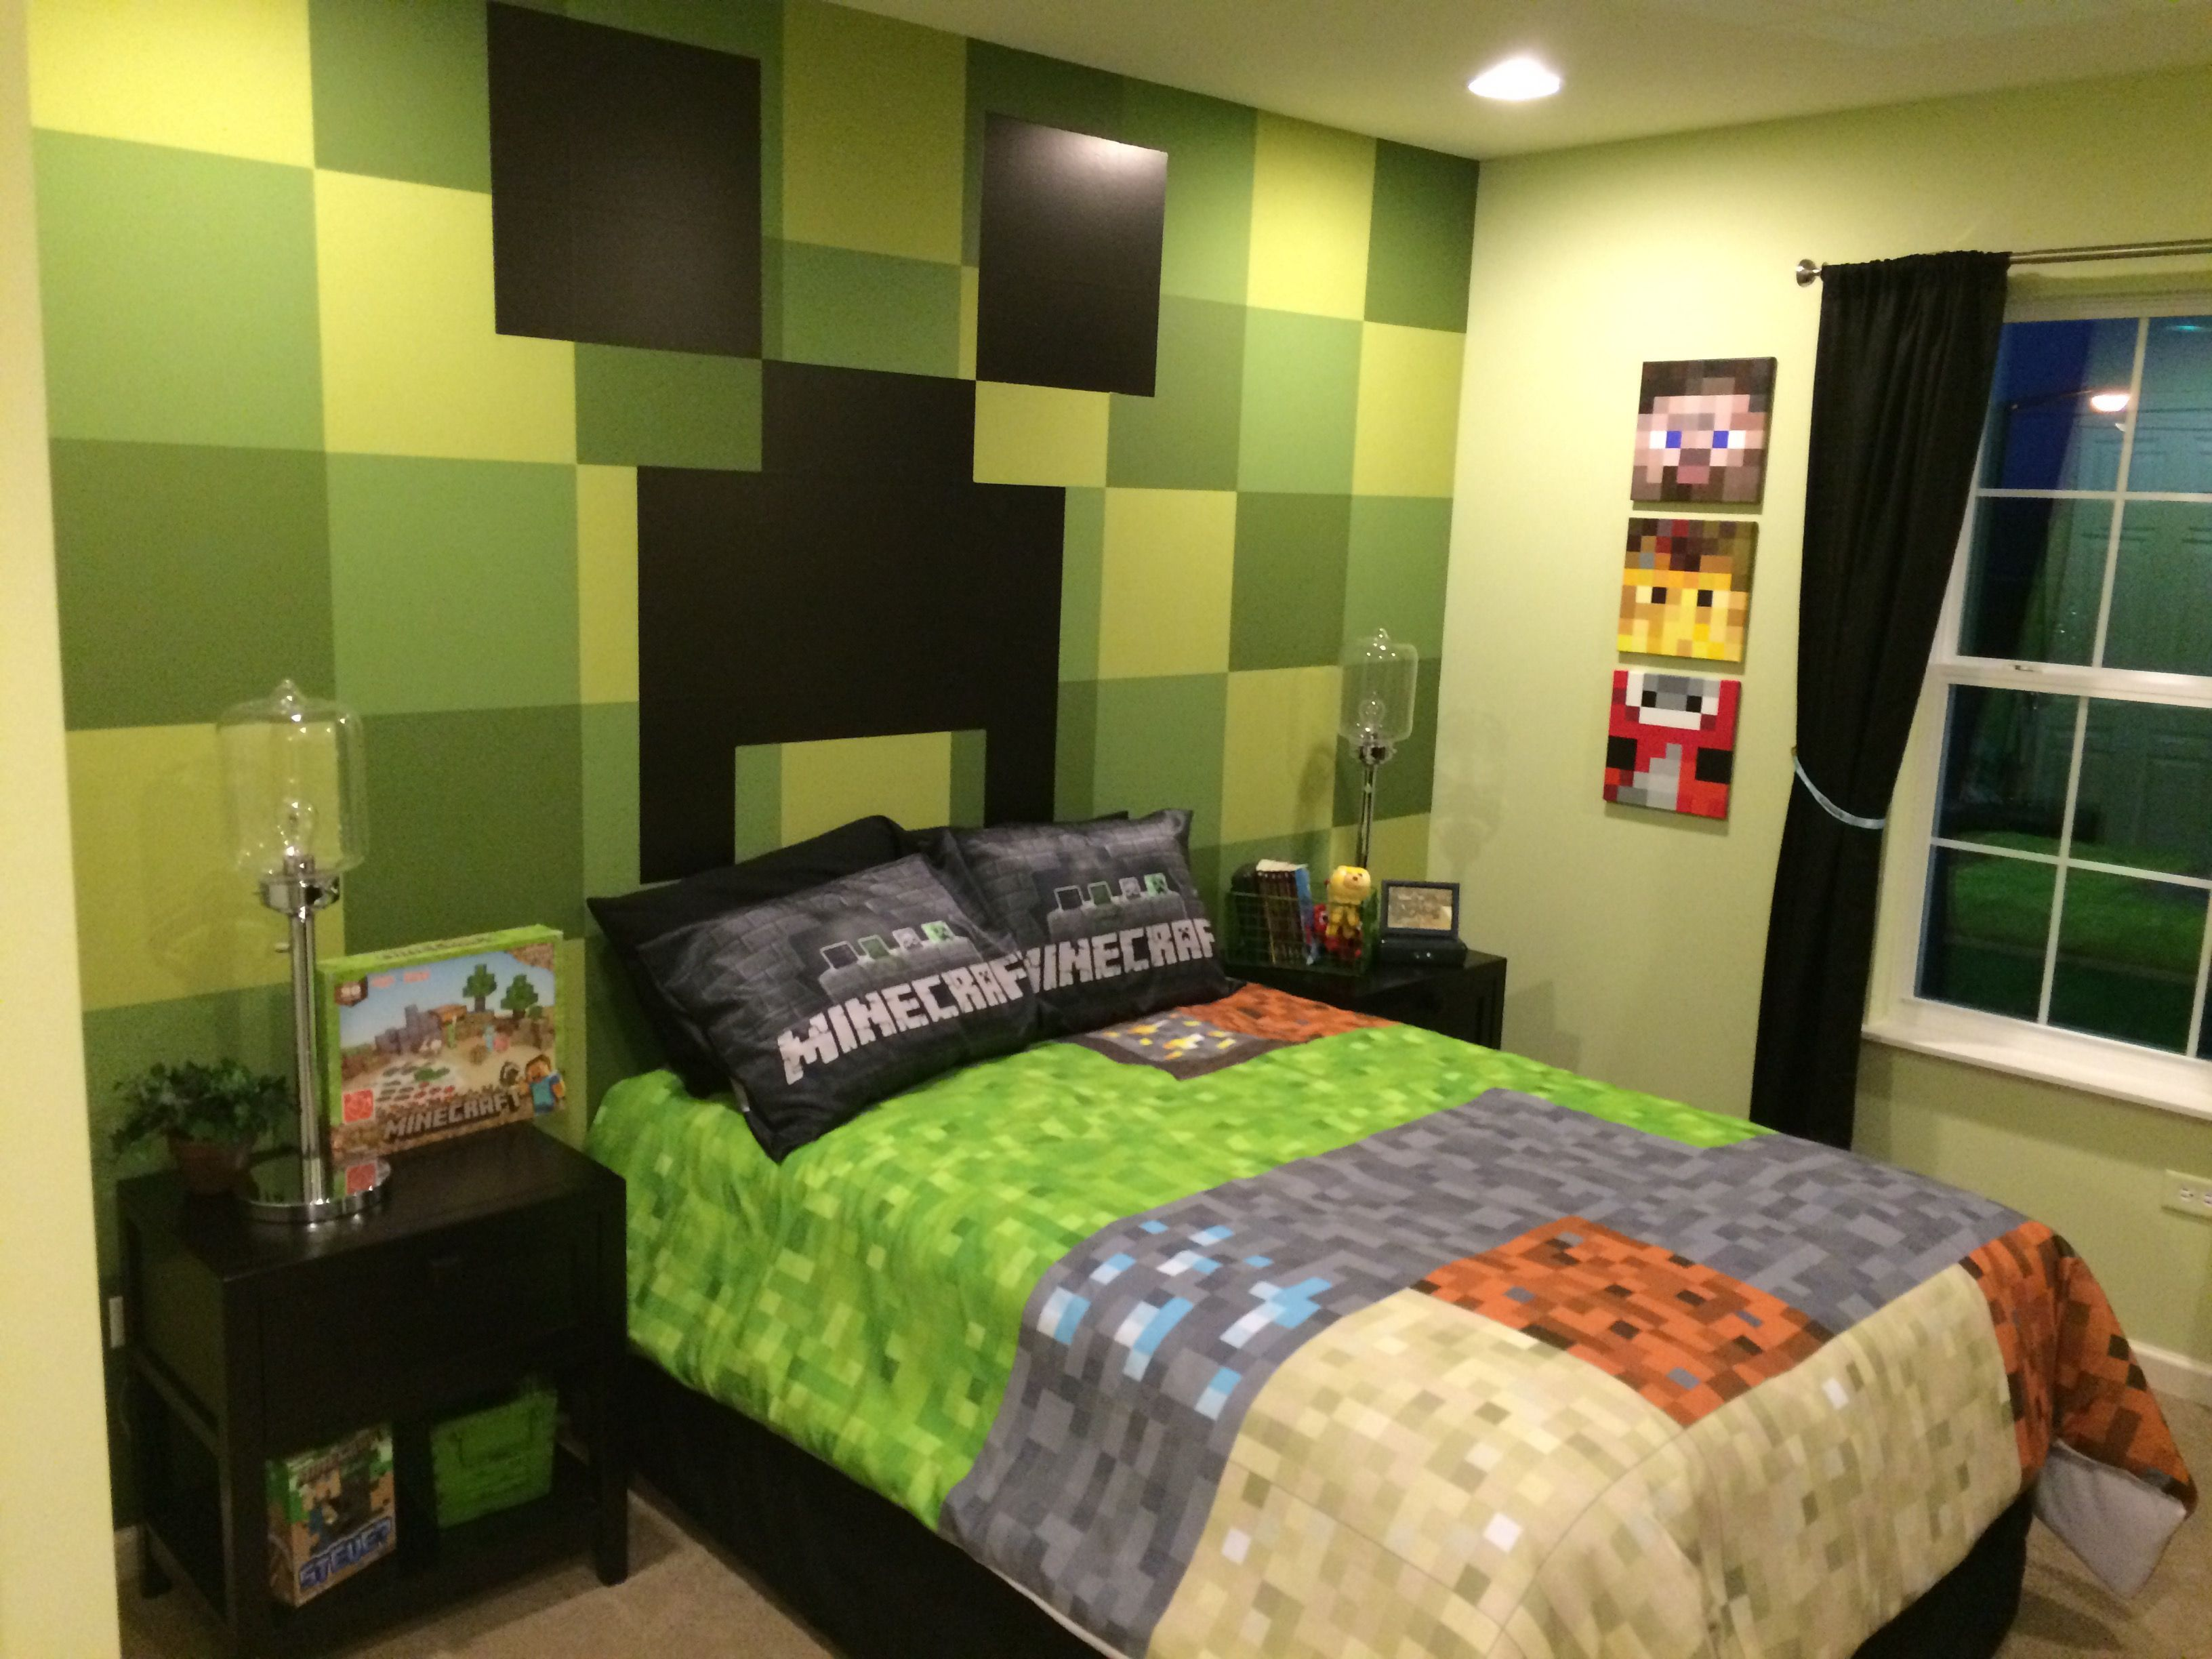 Minecraft bedroom room decor wall designs party boys also best images rh pinterest